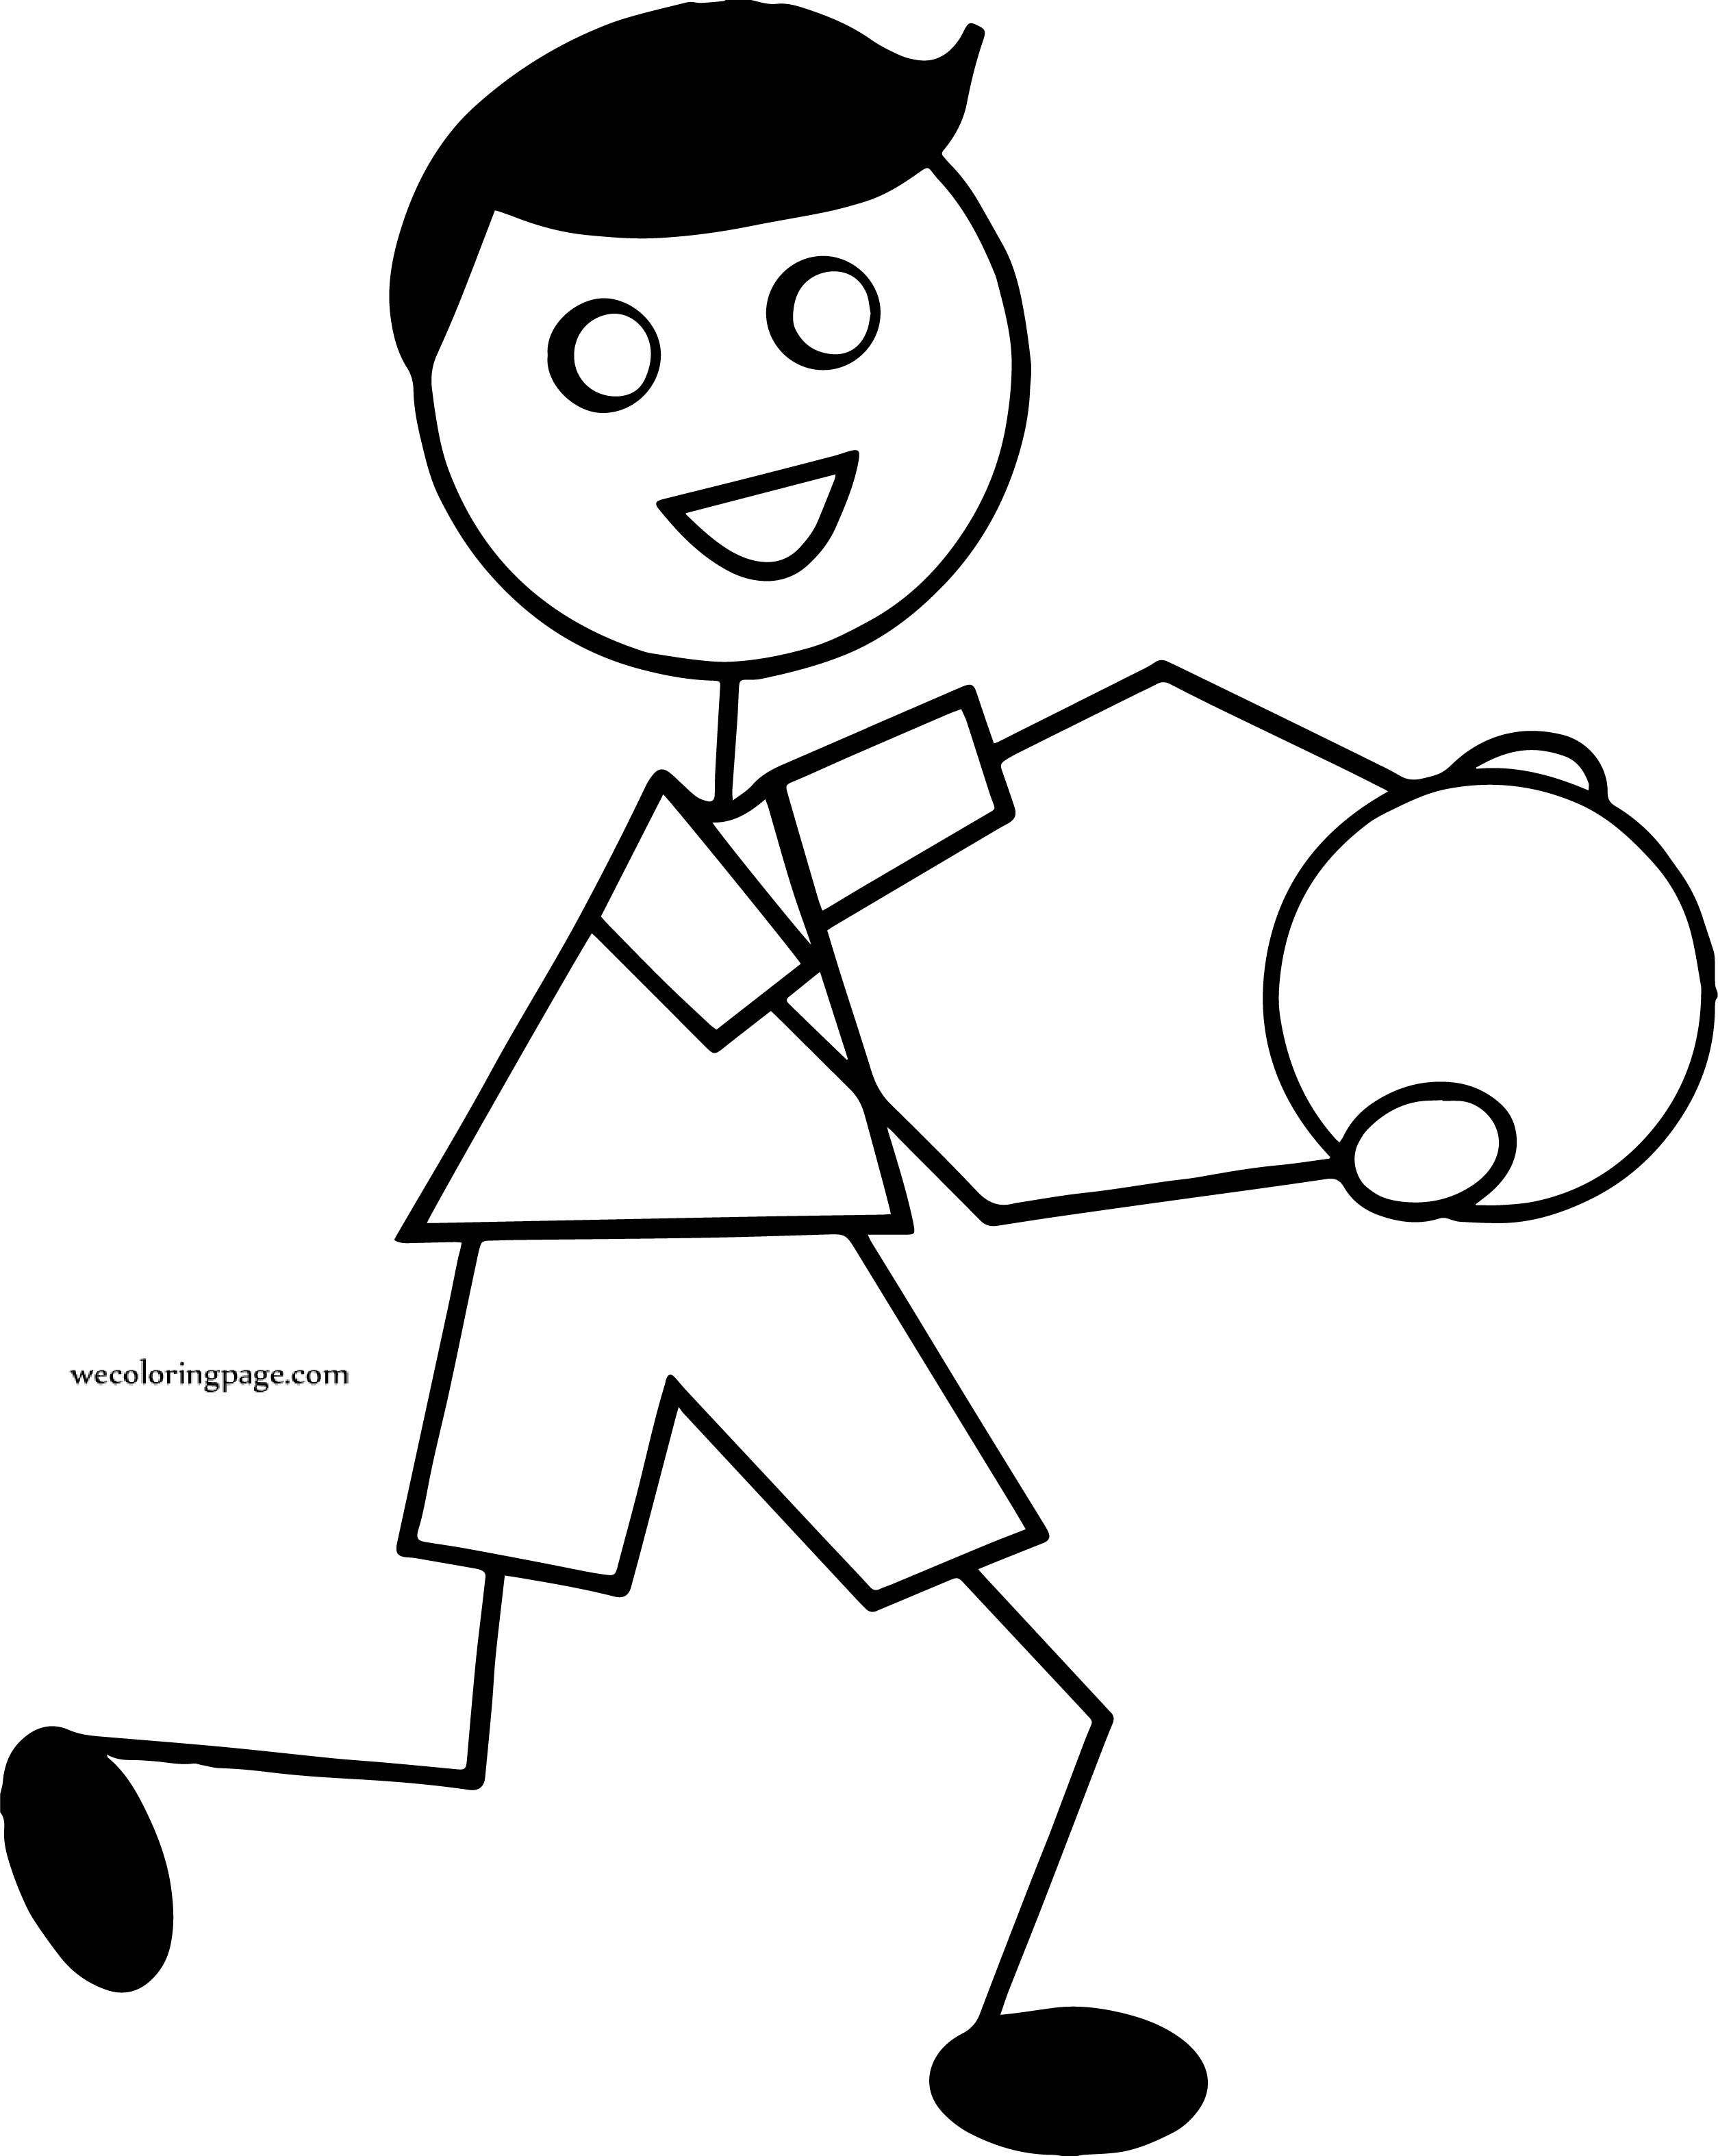 He Boy Holding Ball Coloring Page